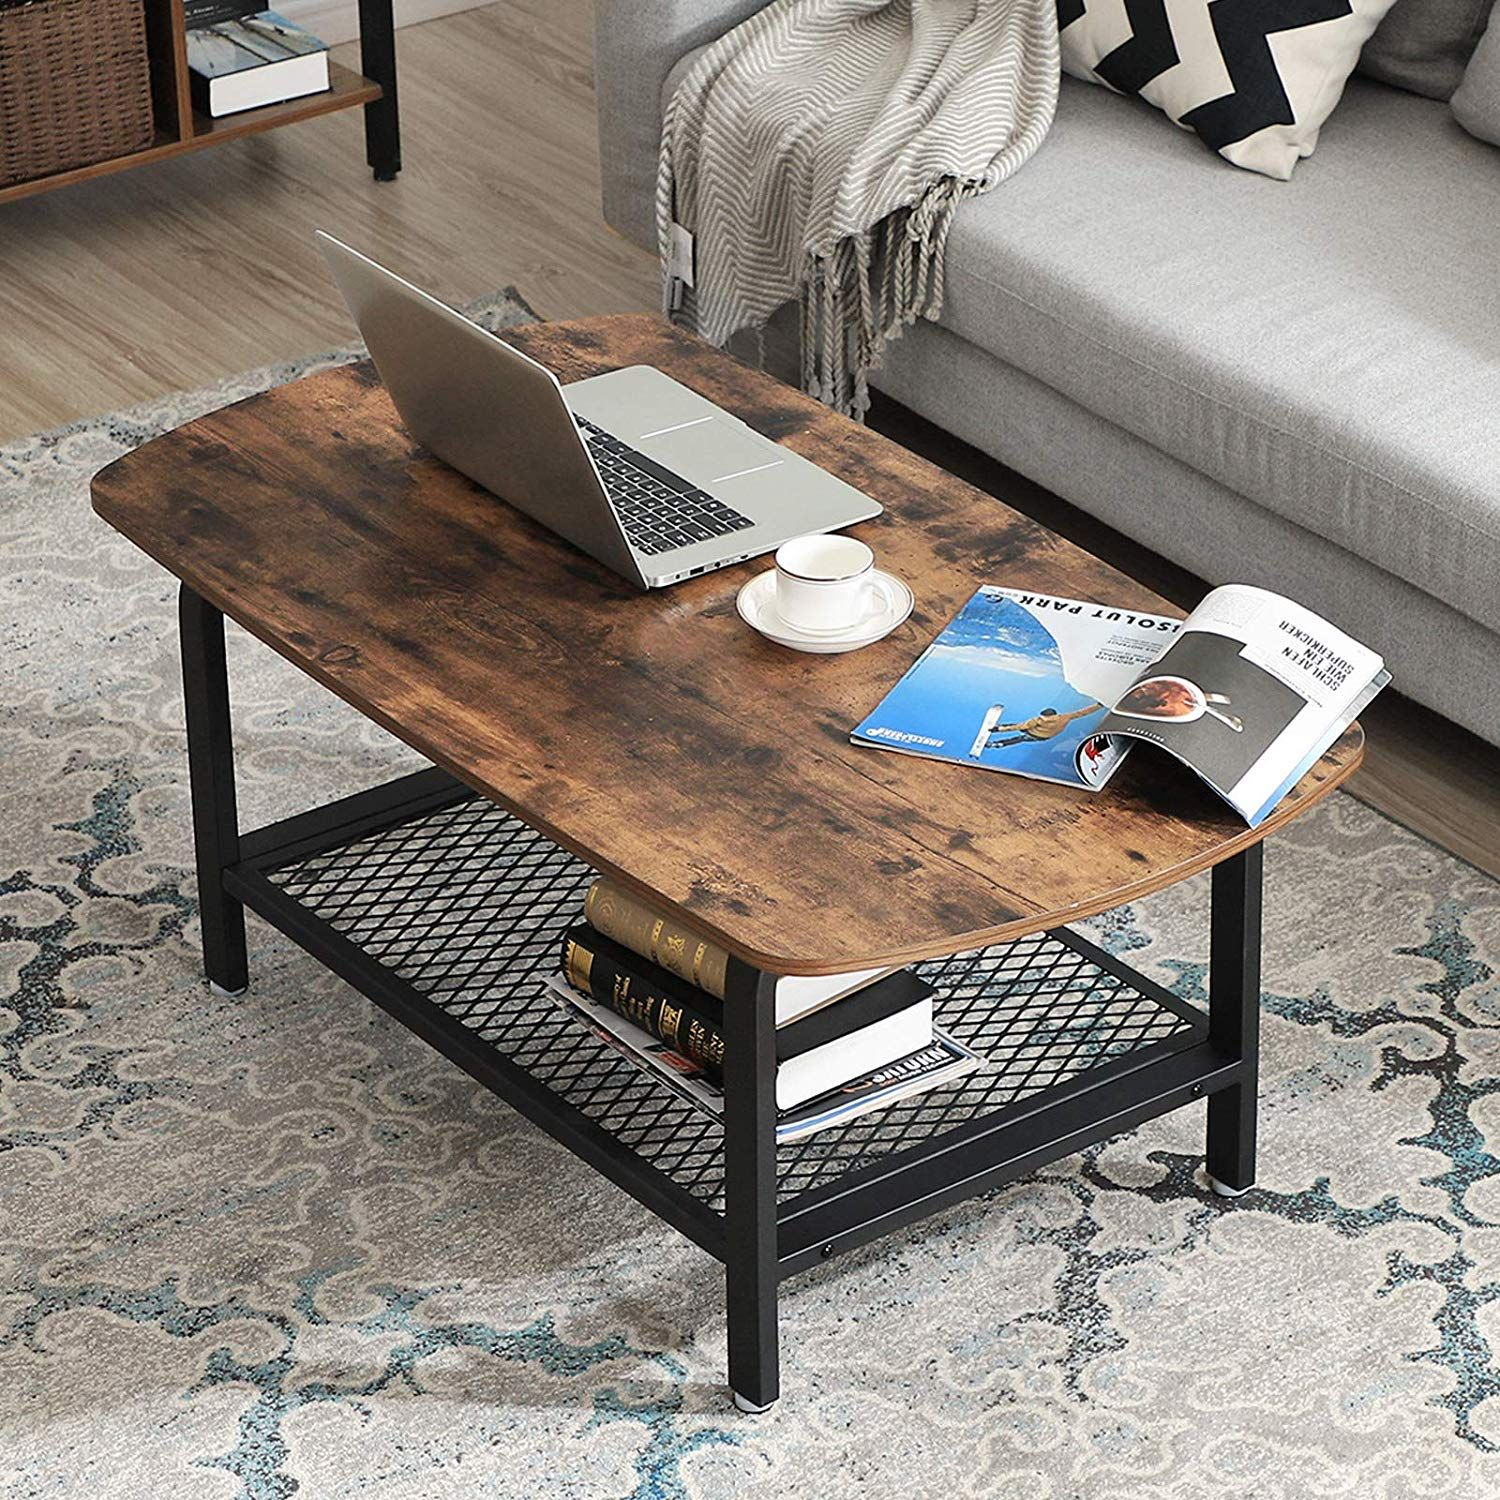 Vintage Coffee Table Wooden Table With Storage Mesh Shelf Wooden Cocktail Table Coffee Table Vintage Coffee Table [ 1500 x 1500 Pixel ]